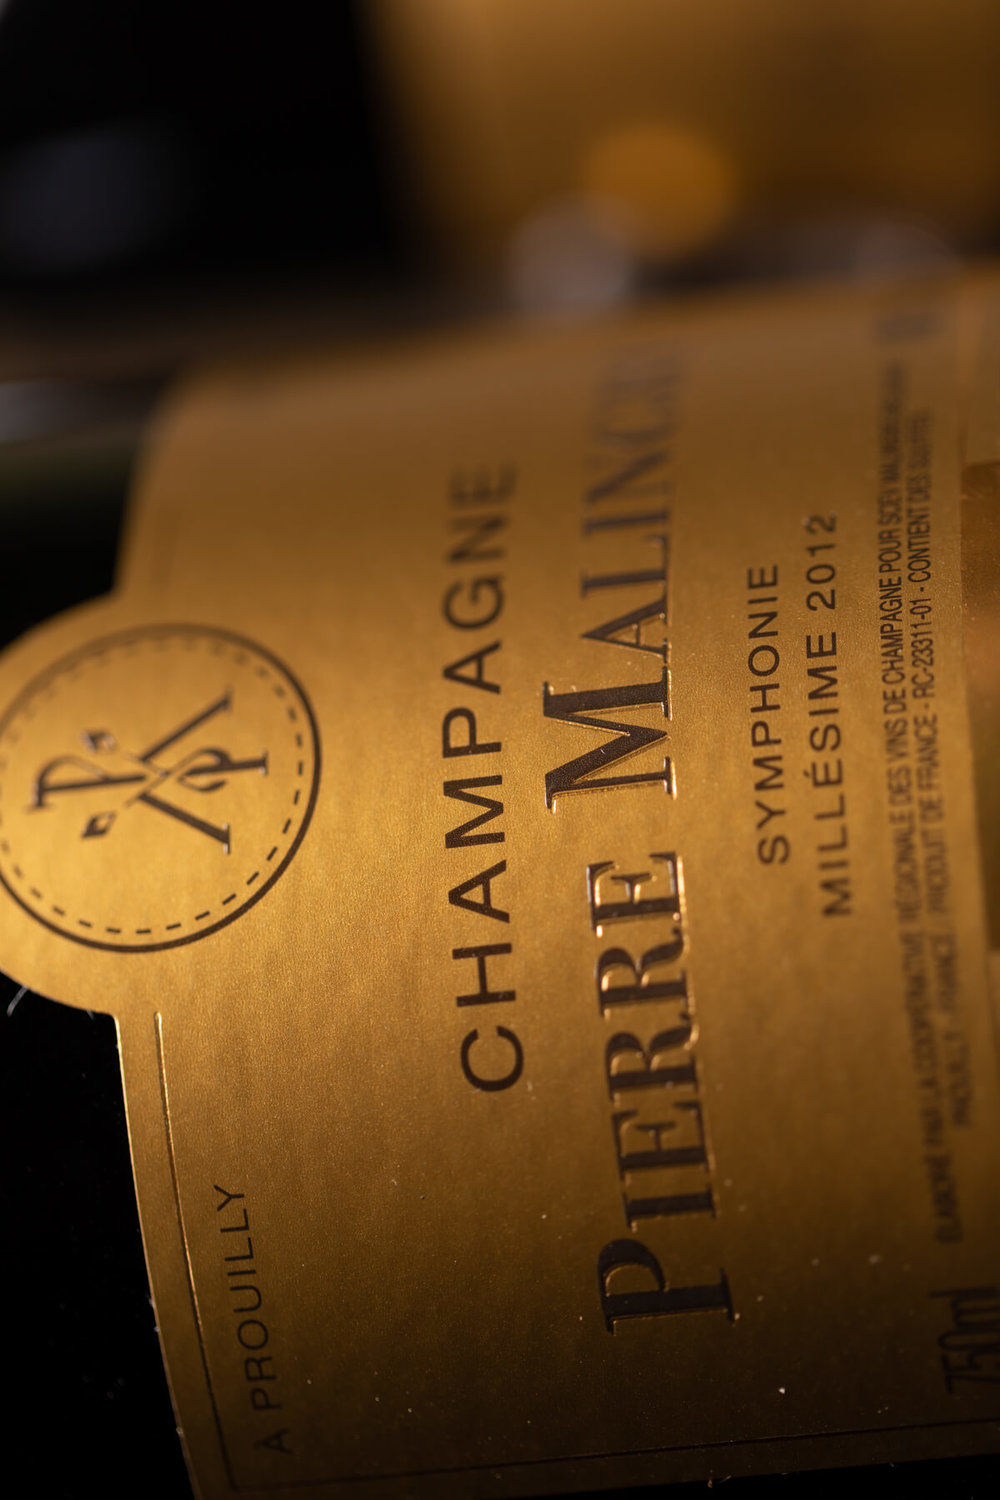 Photographe Champagne Epernay - Tristan Meunier - Champagne Malingre -3.jpg